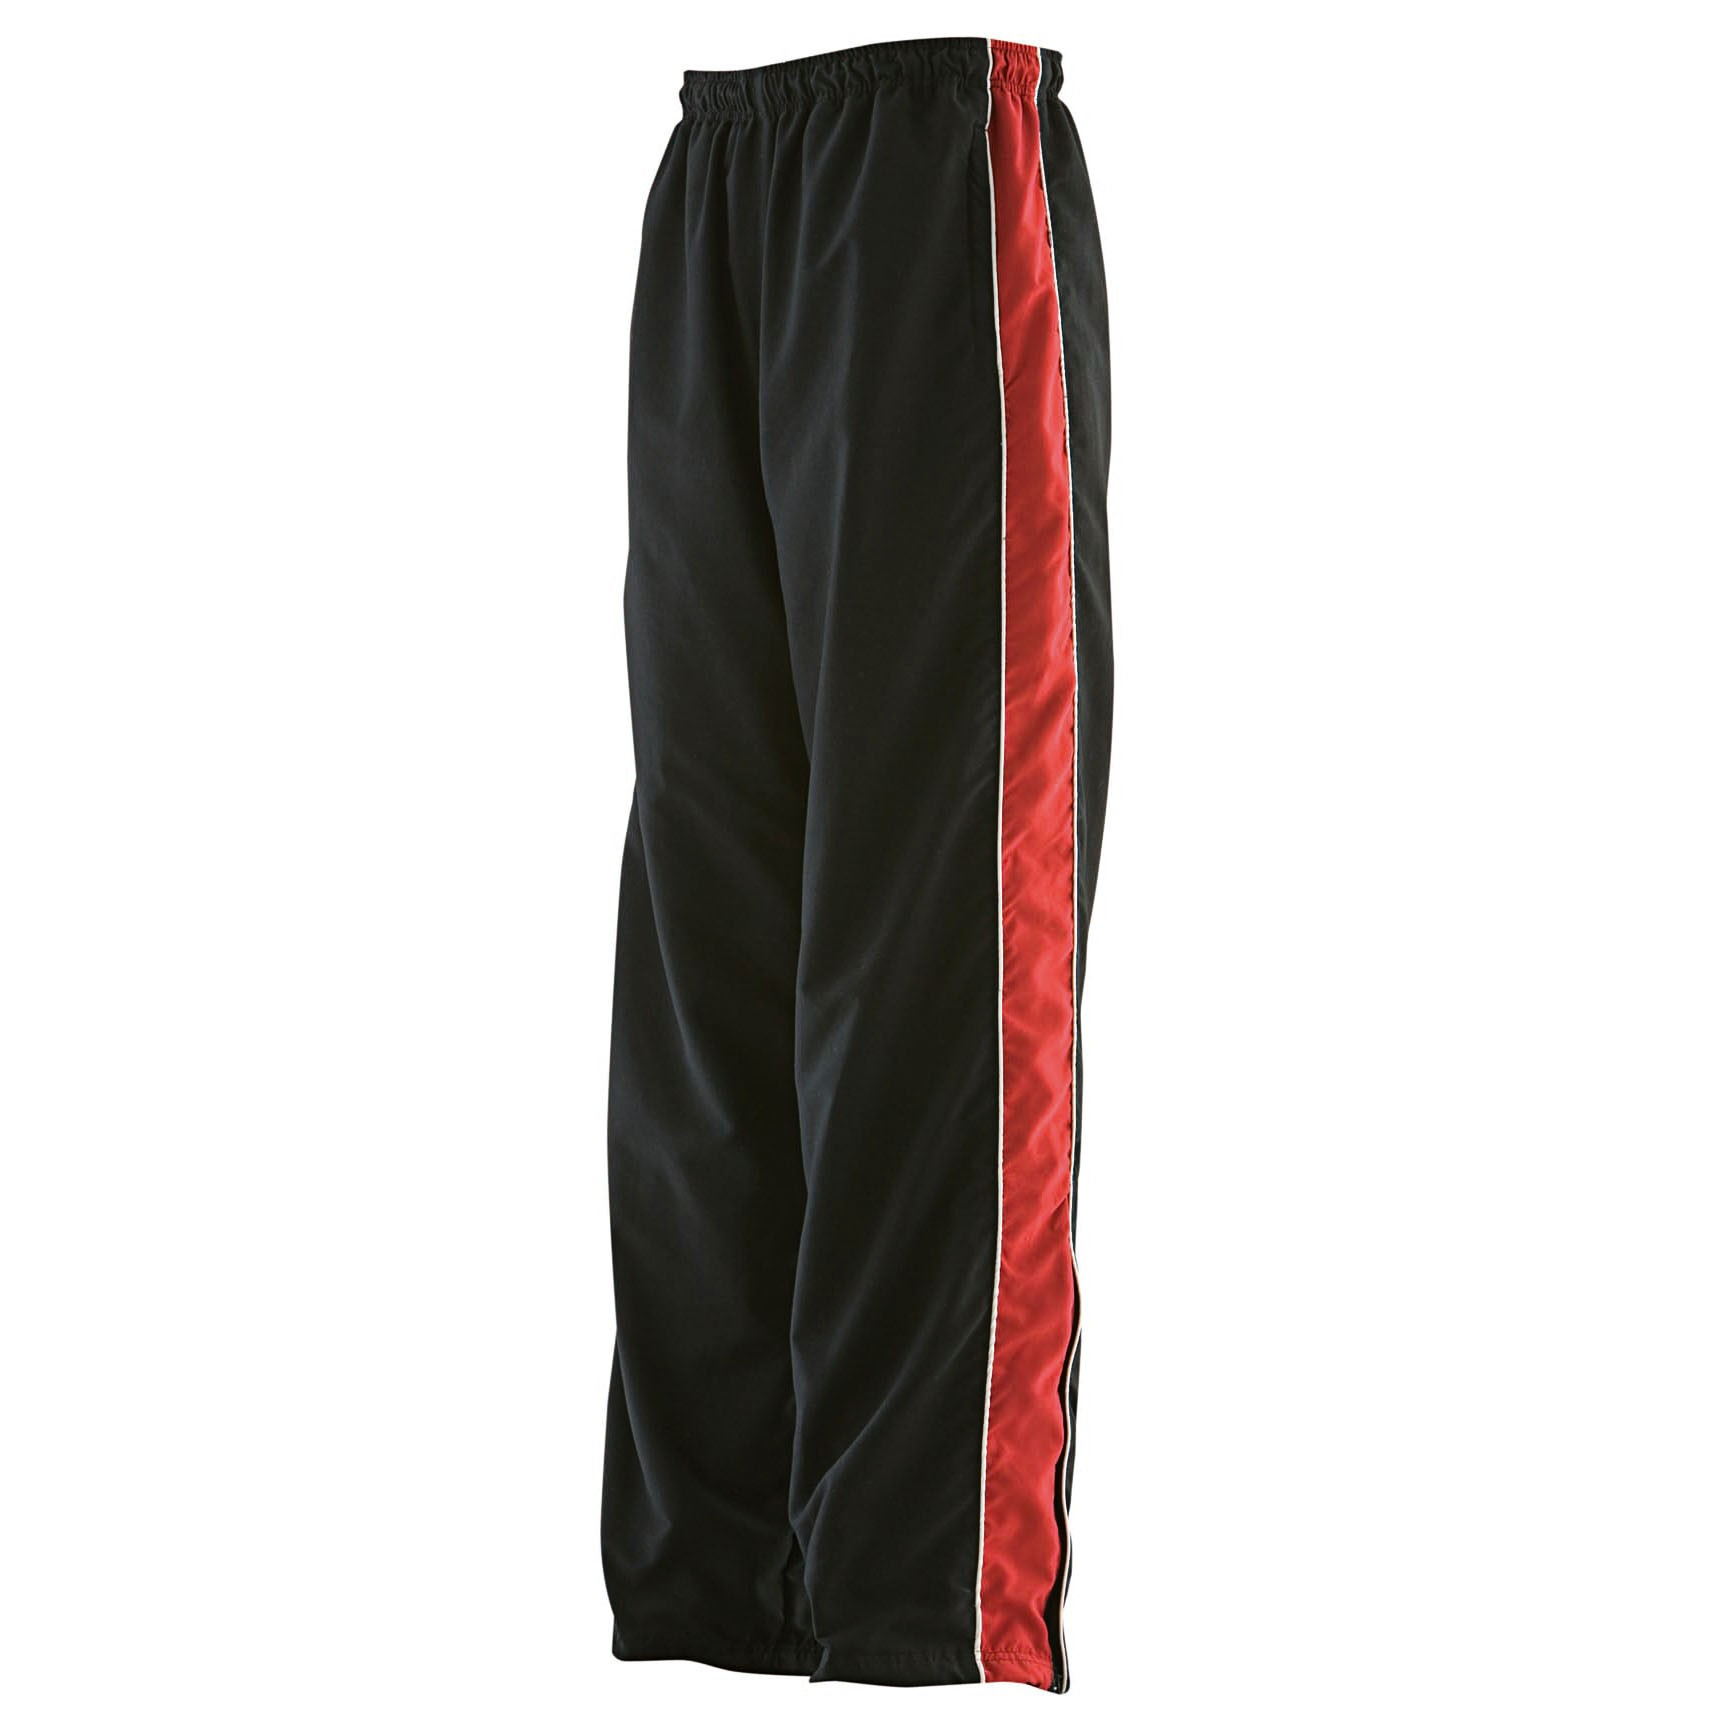 Teamwear Track Pant Black / Red / White